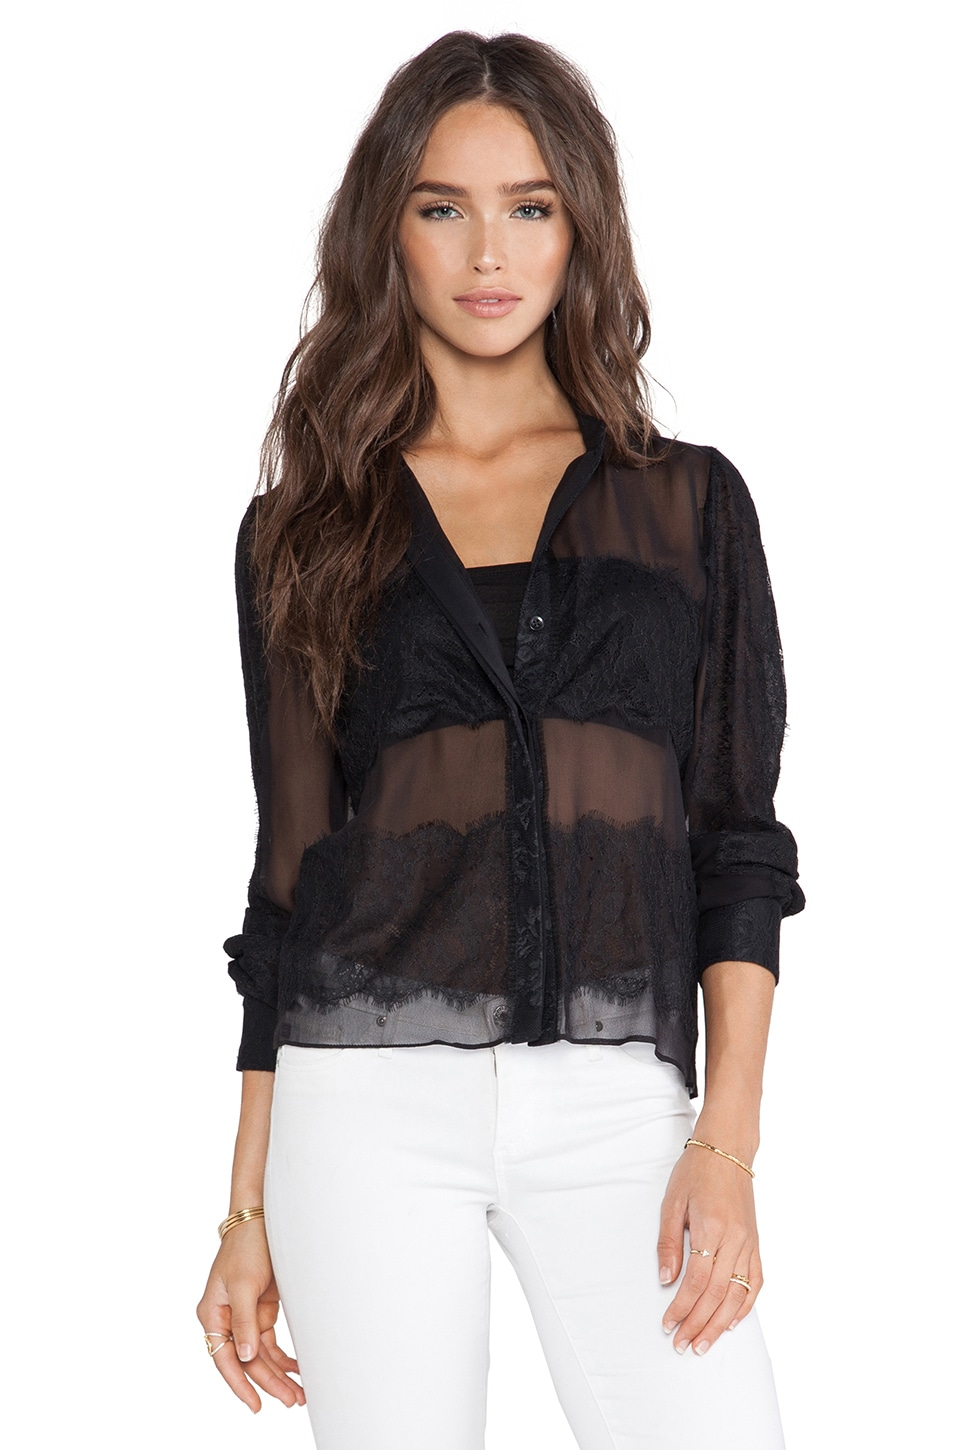 Alice + Olivia Vicka Blouse in Black